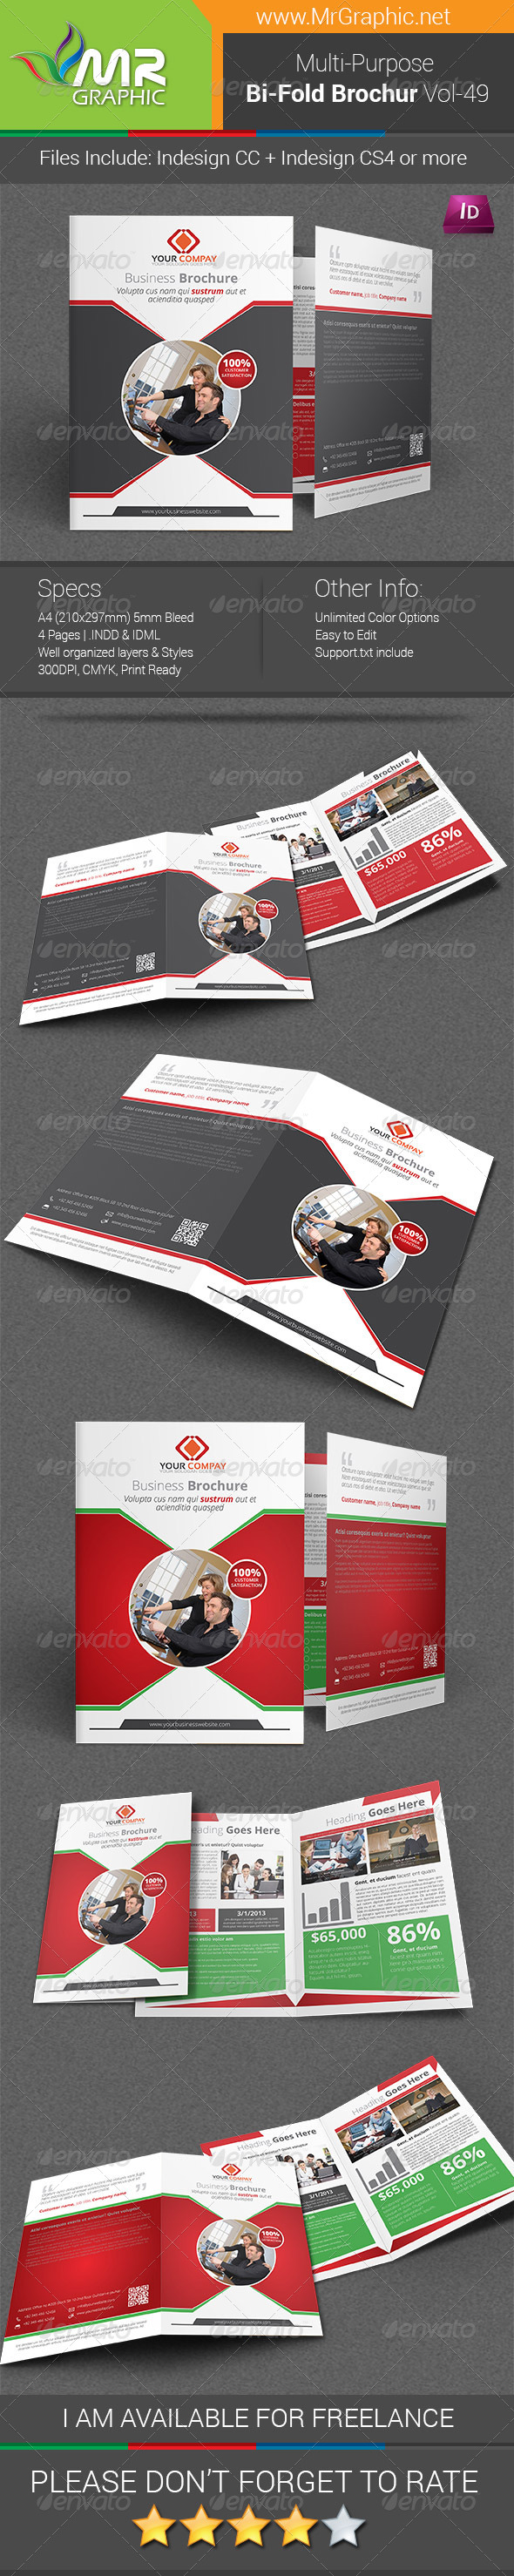 Multi-purpose Bi-fold Brochure Template Vol-49